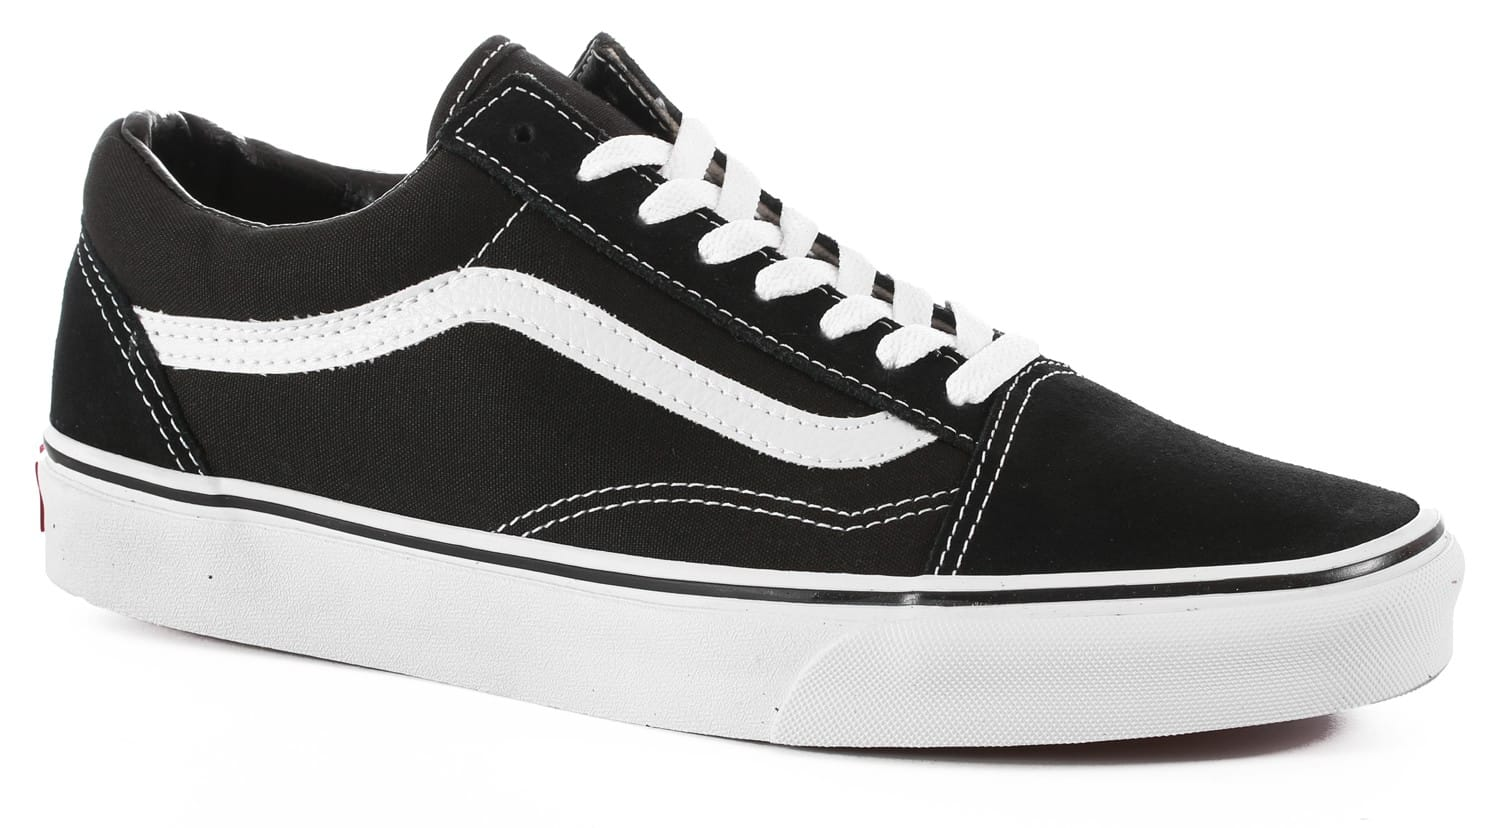 Cheap Mens Skate Shoes Online